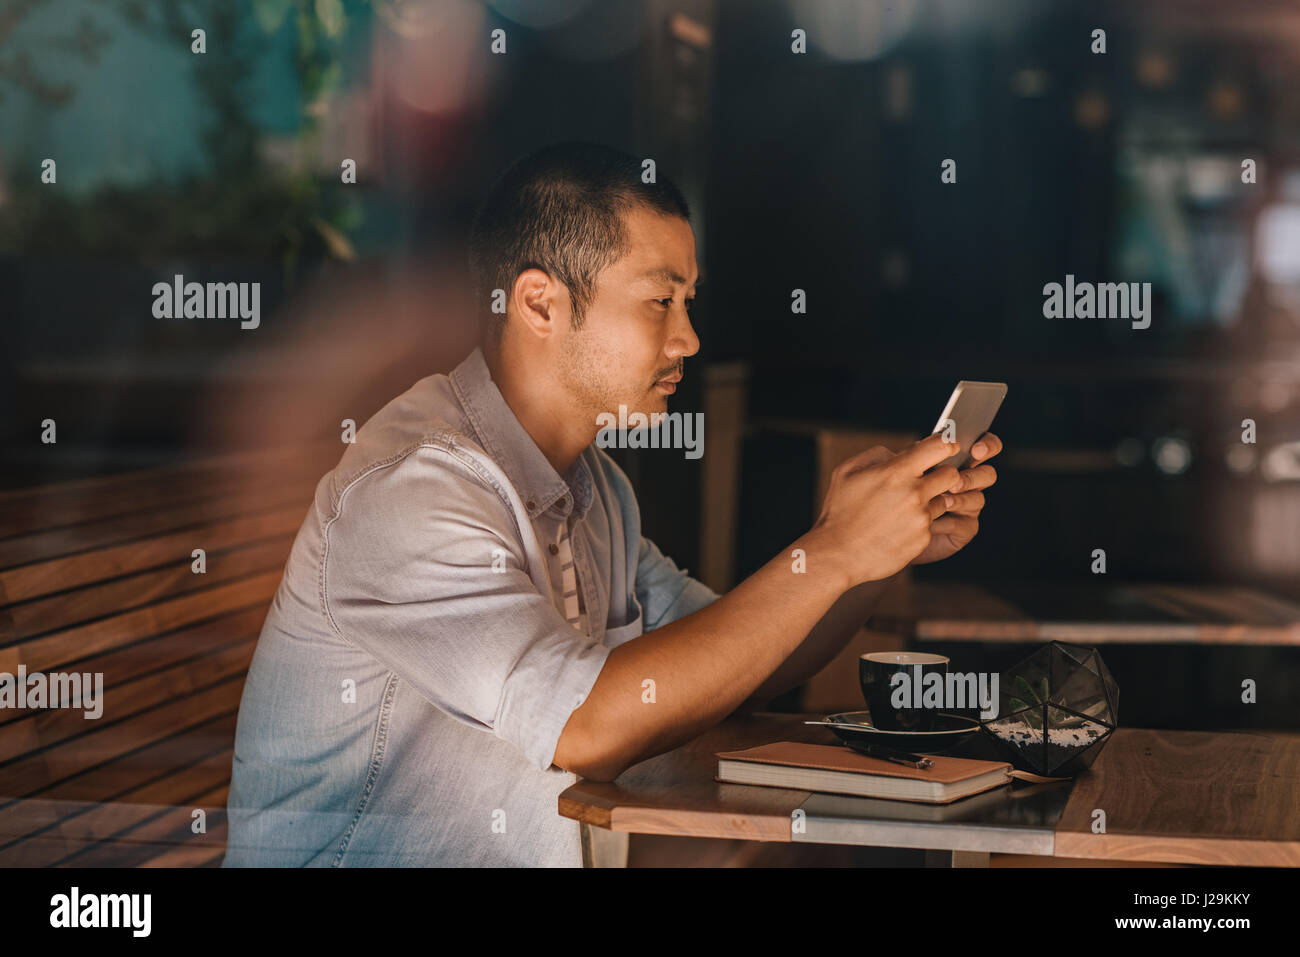 Young Asian man sitting in a cafe surfing the internet - Stock Image